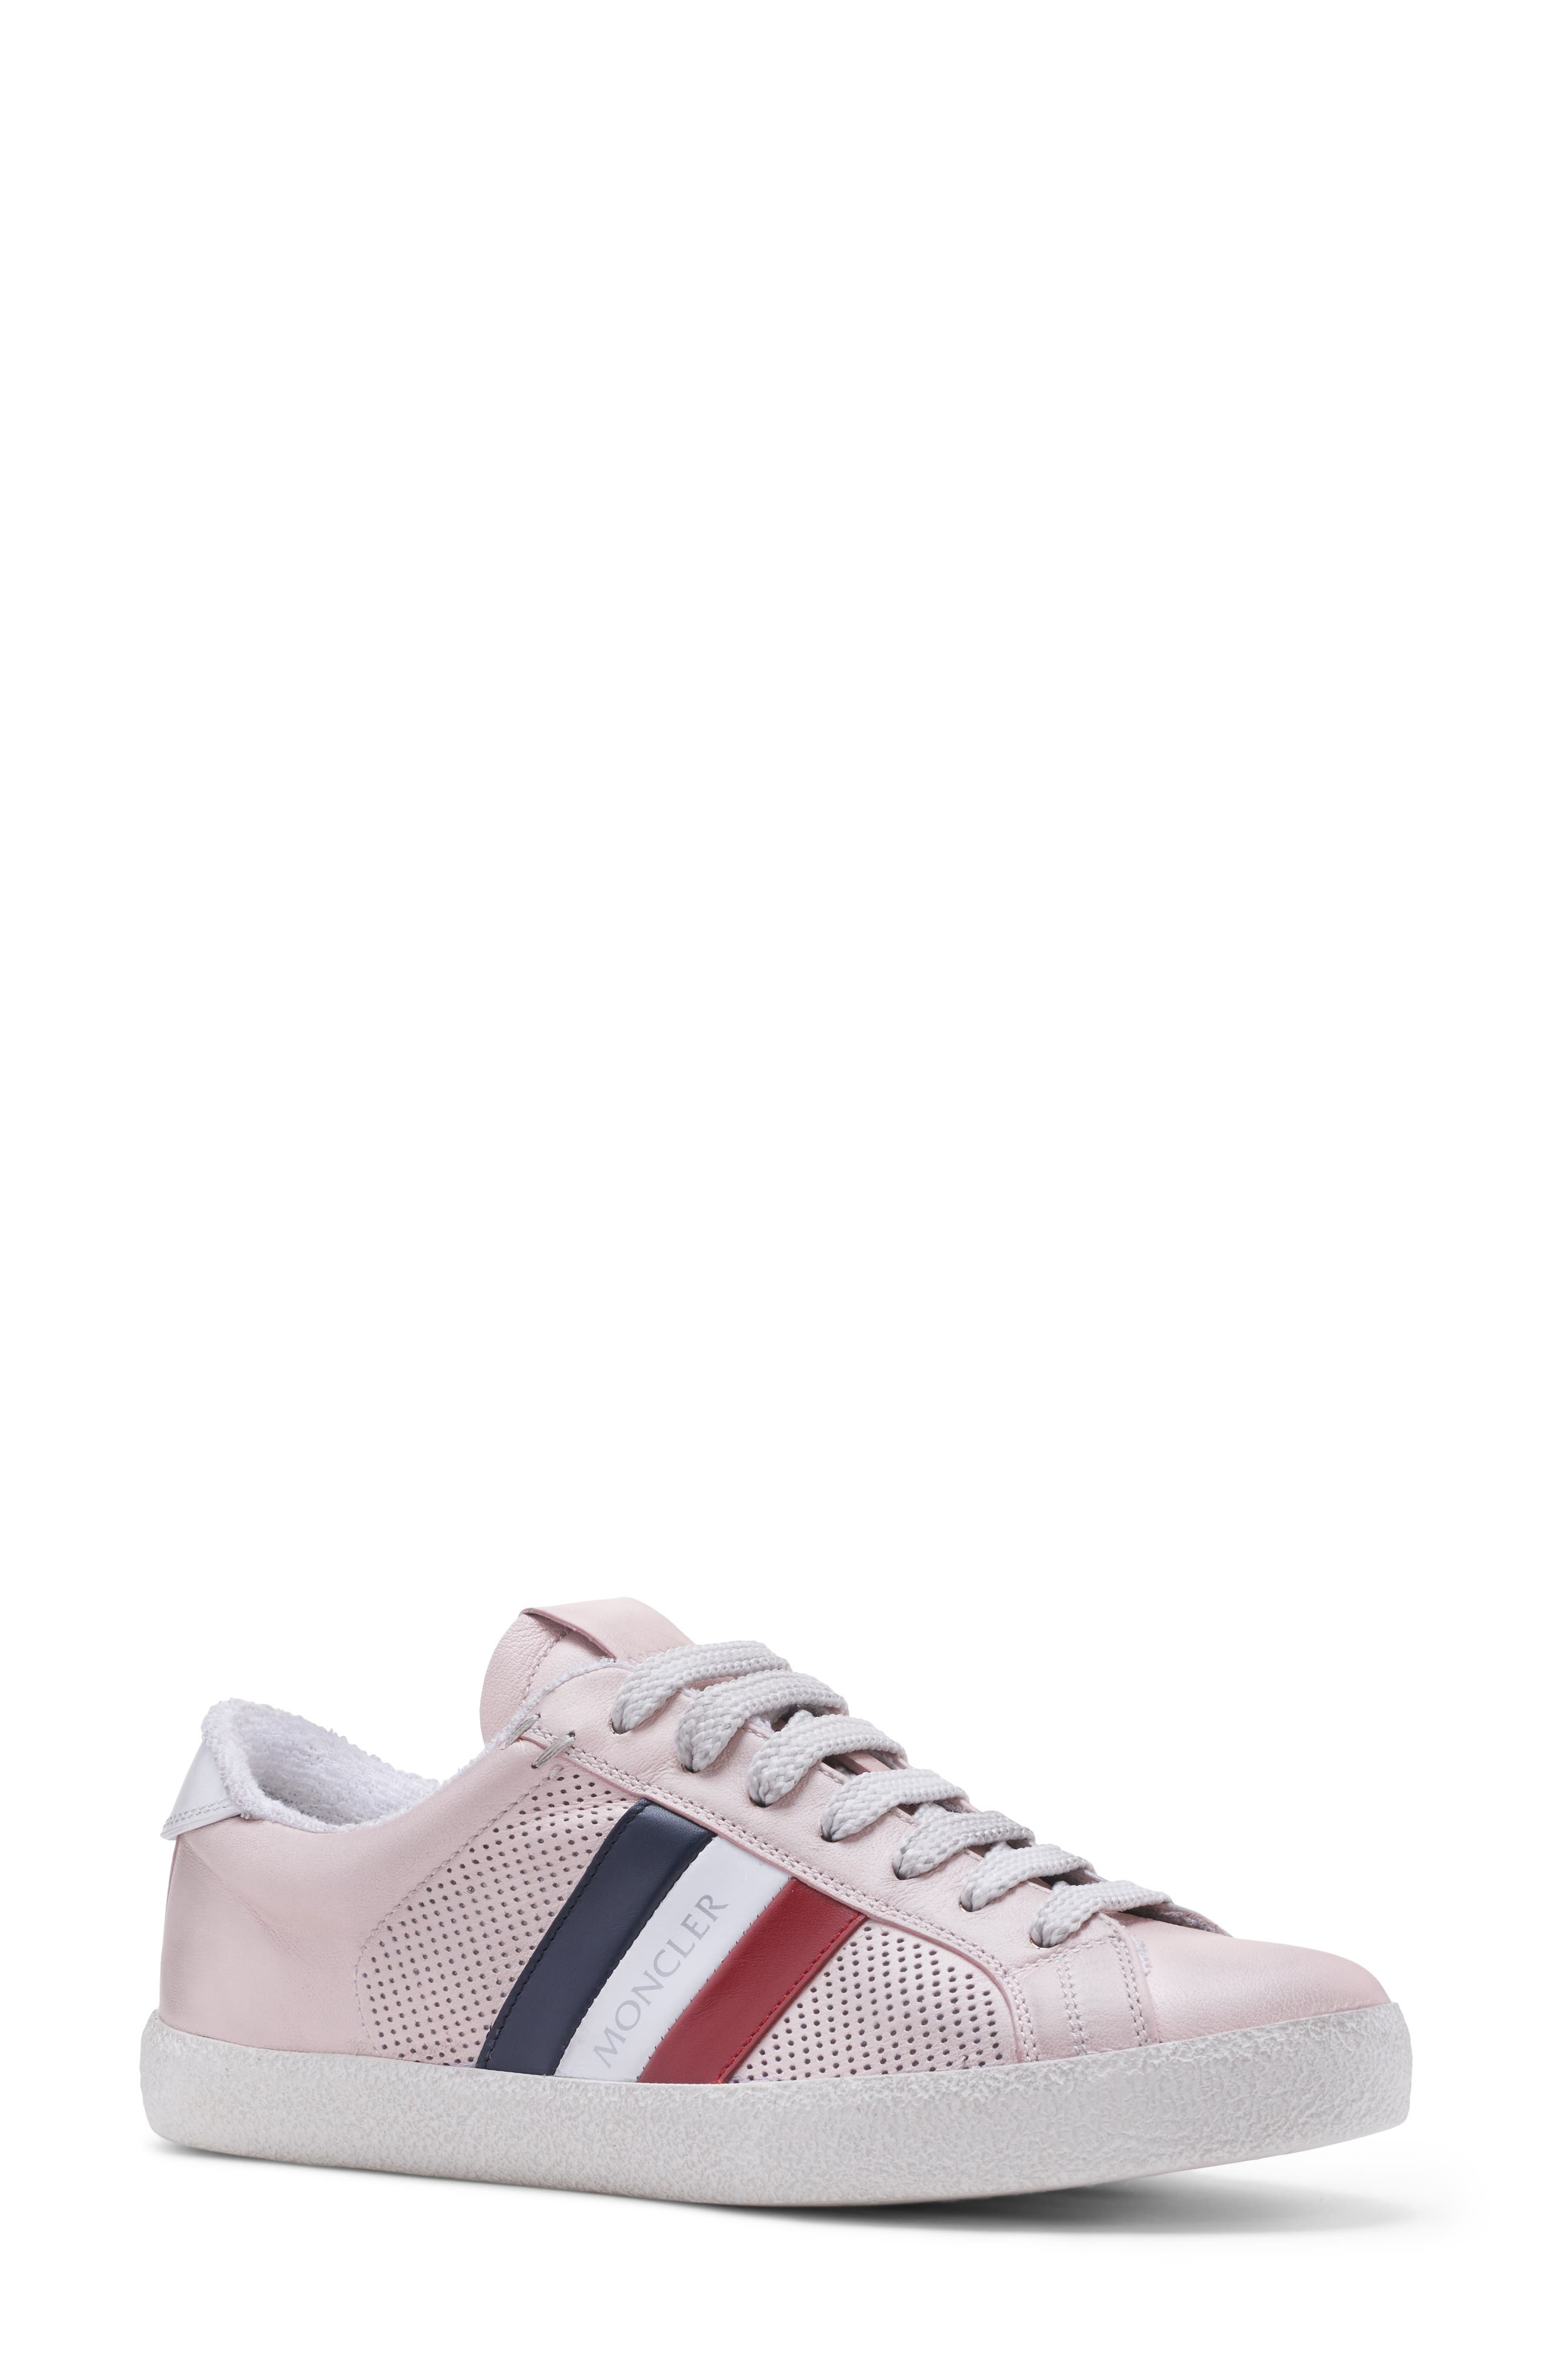 Tricolor logo stripes elevate the look of a low-top sneaker fashioned from smooth leather and embellished with sporty perforations. Style Name: Moncler Ryegrass Sneaker (Women). Style Number: 5971659. Available in stores.